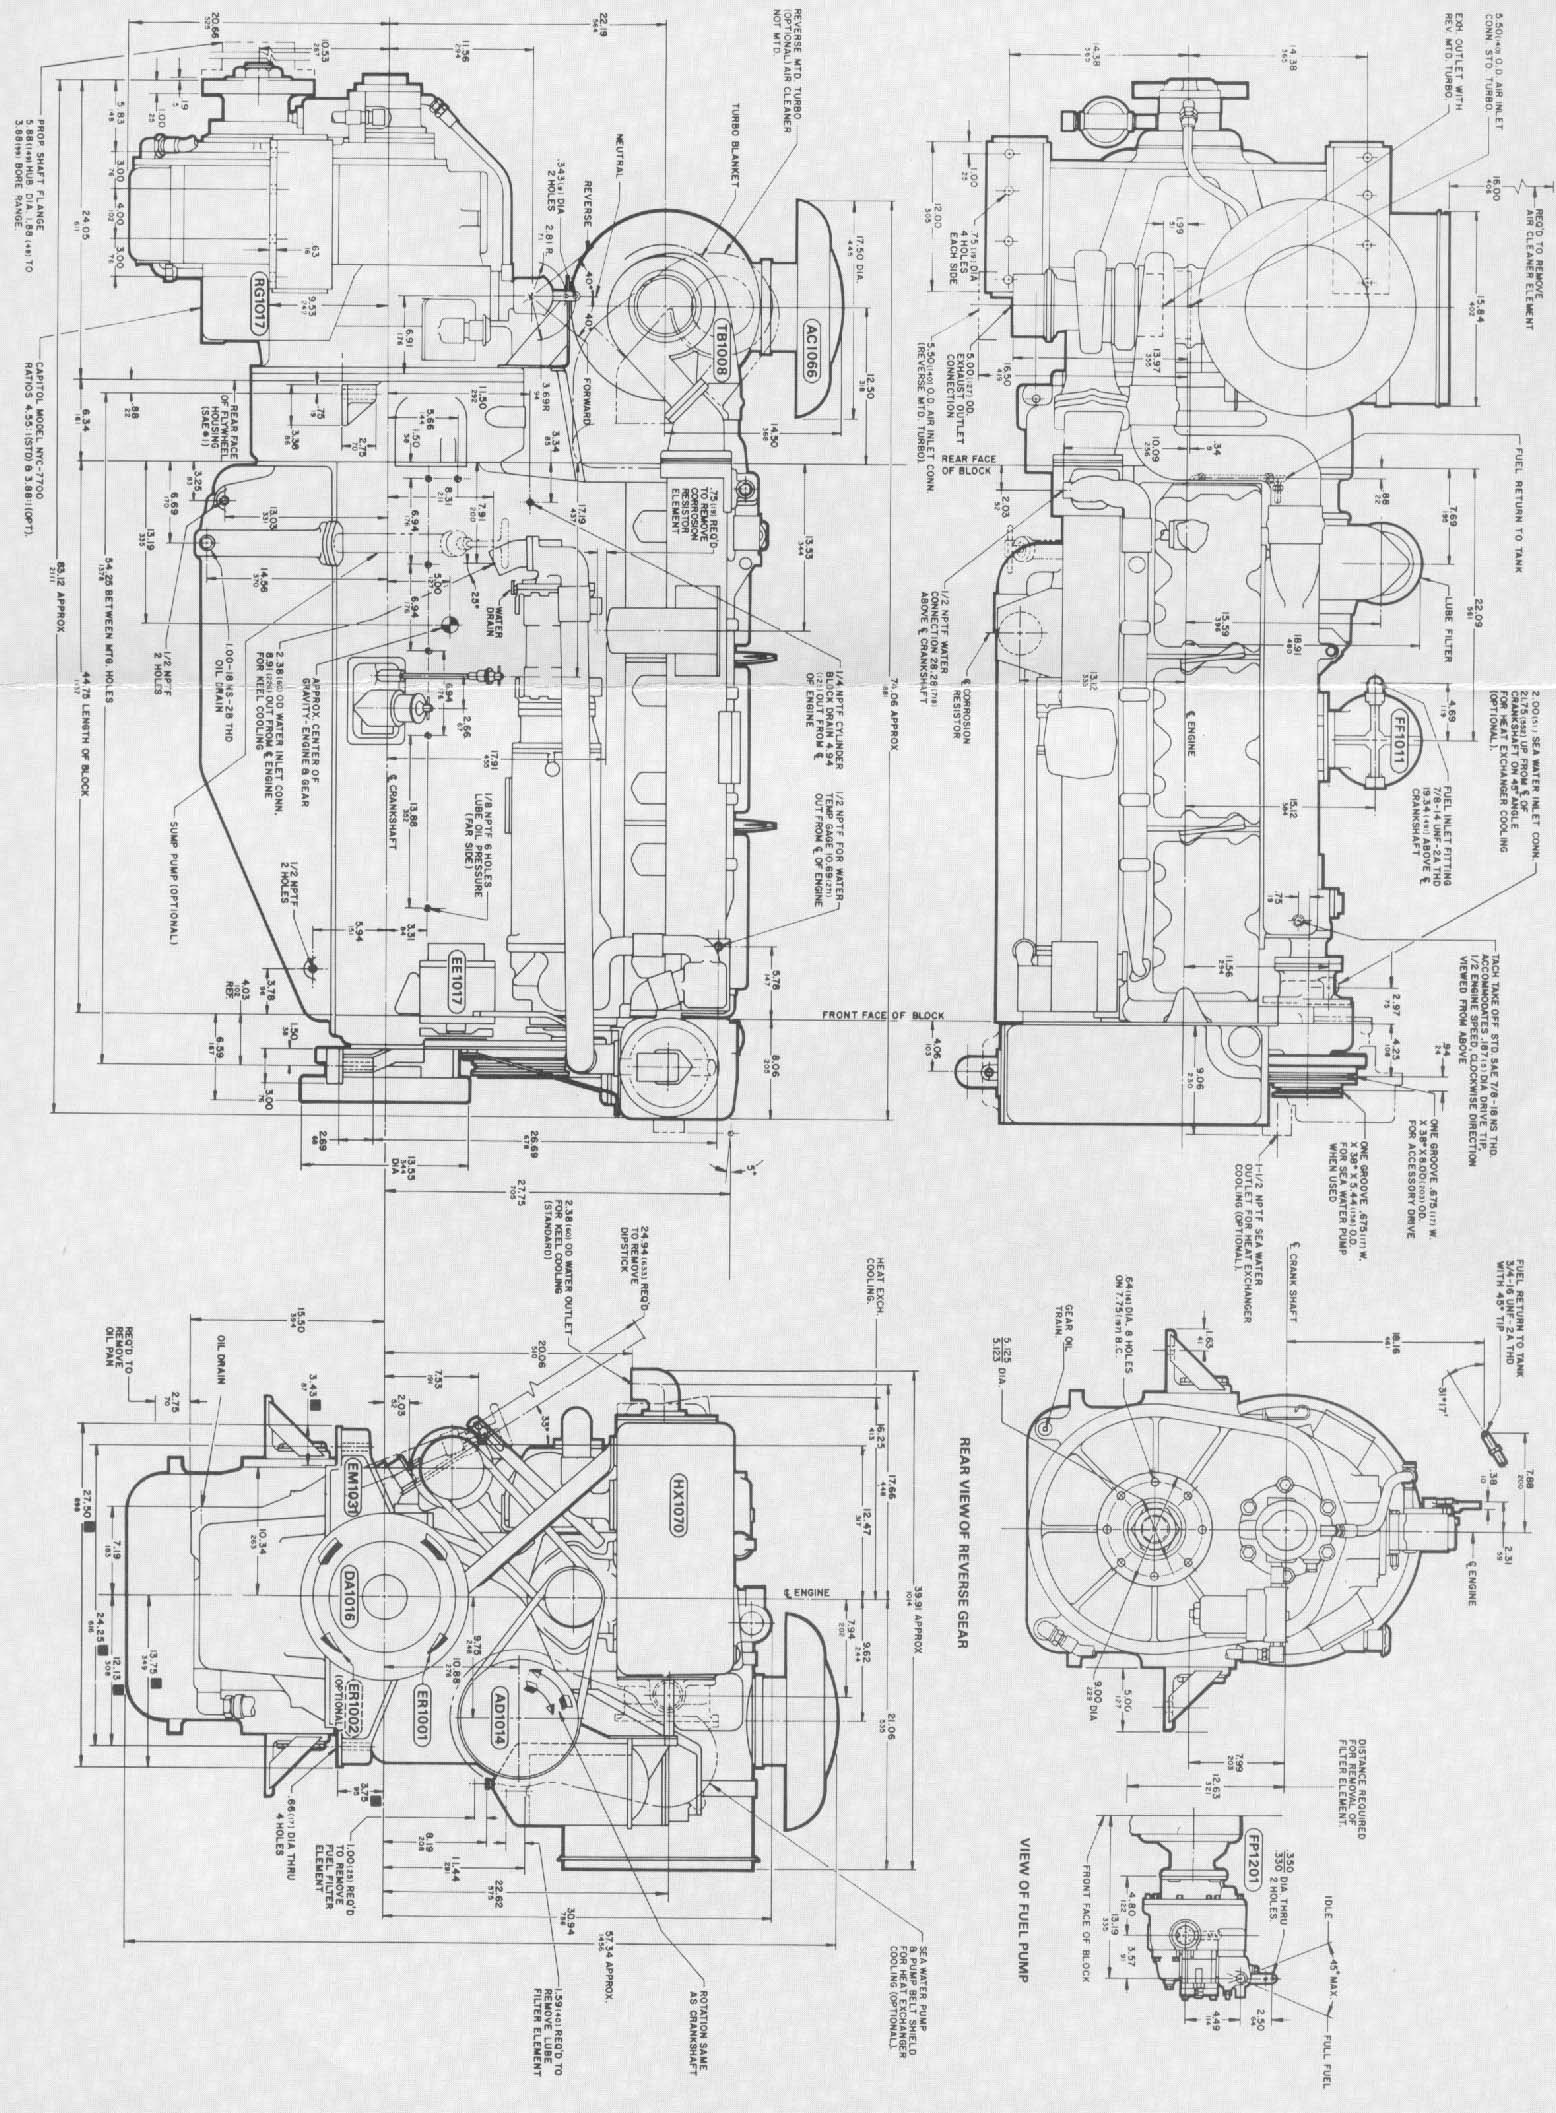 Cummins Alternator Generator Diagram Great Installation